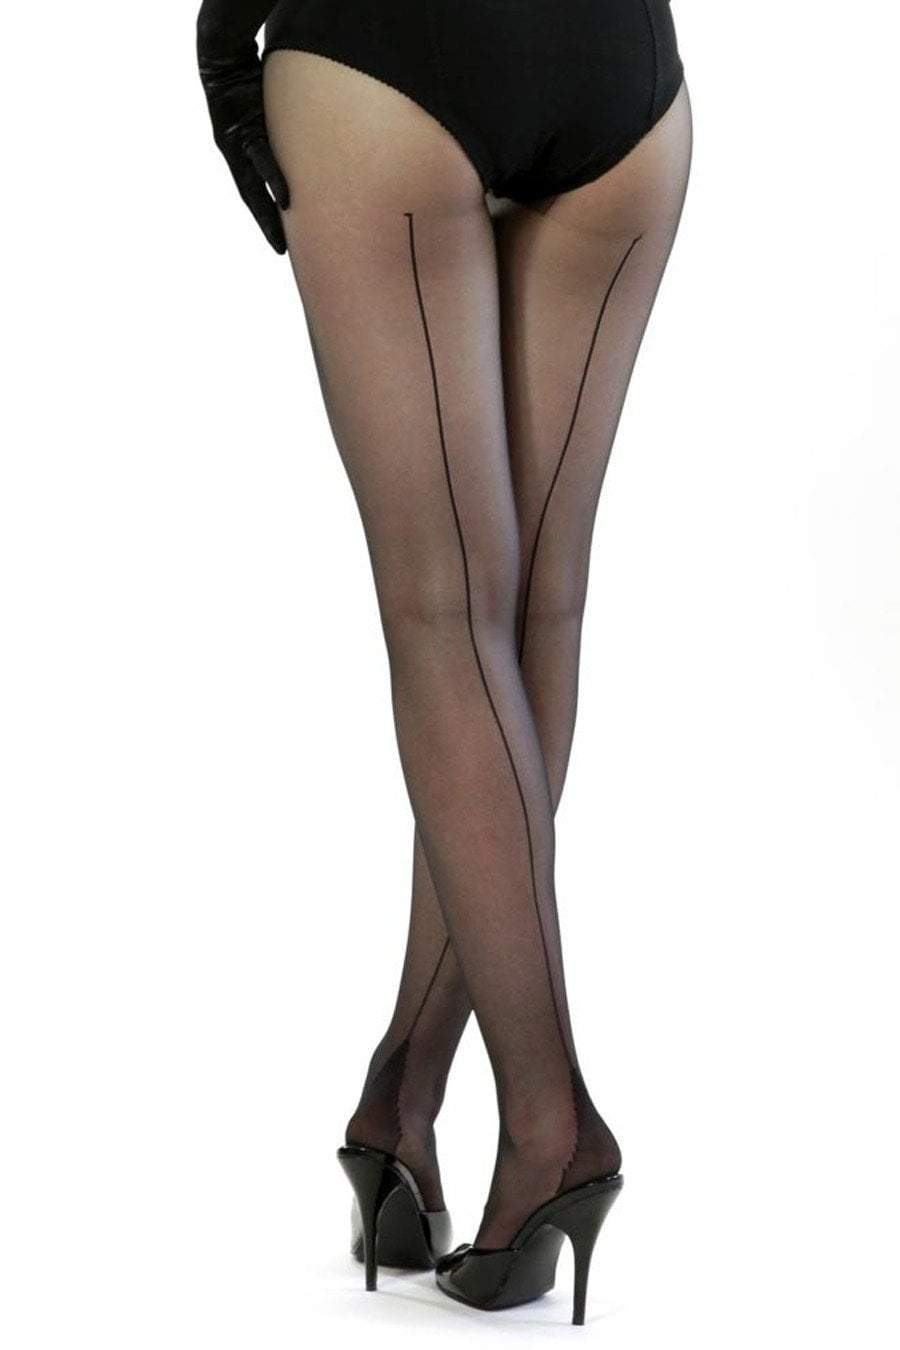 a80f934cd73 retro seamed stockings black sheer tights hosiery what katie did